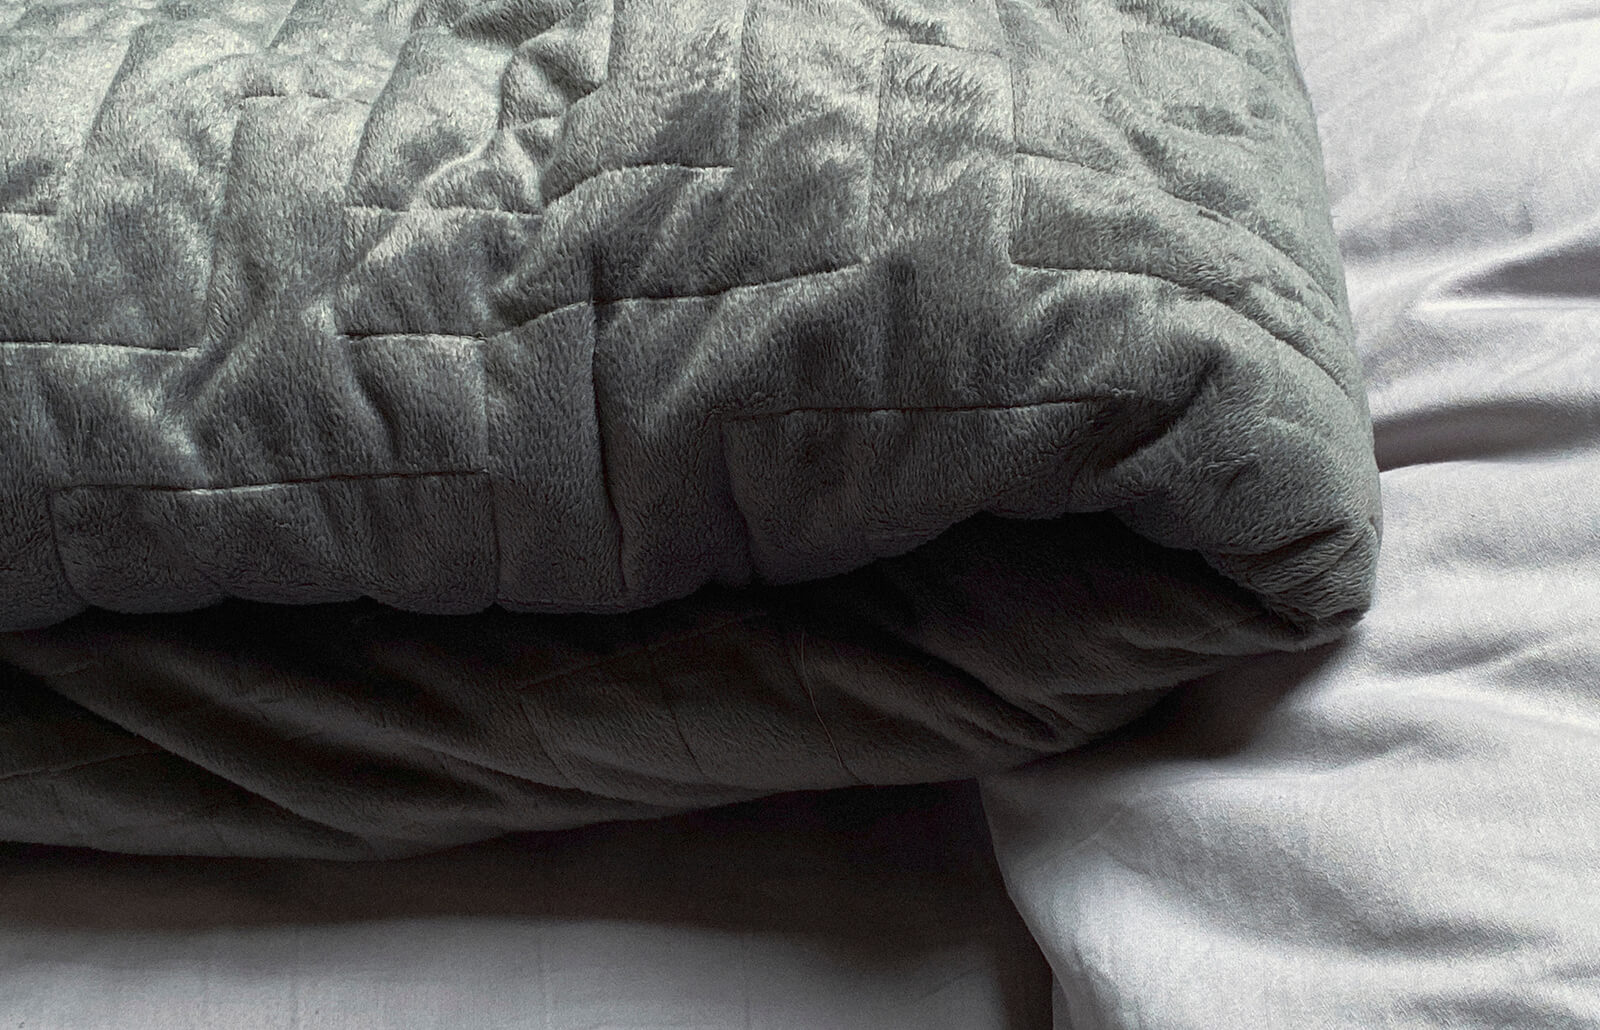 Dry Clean a Weighted Blanket